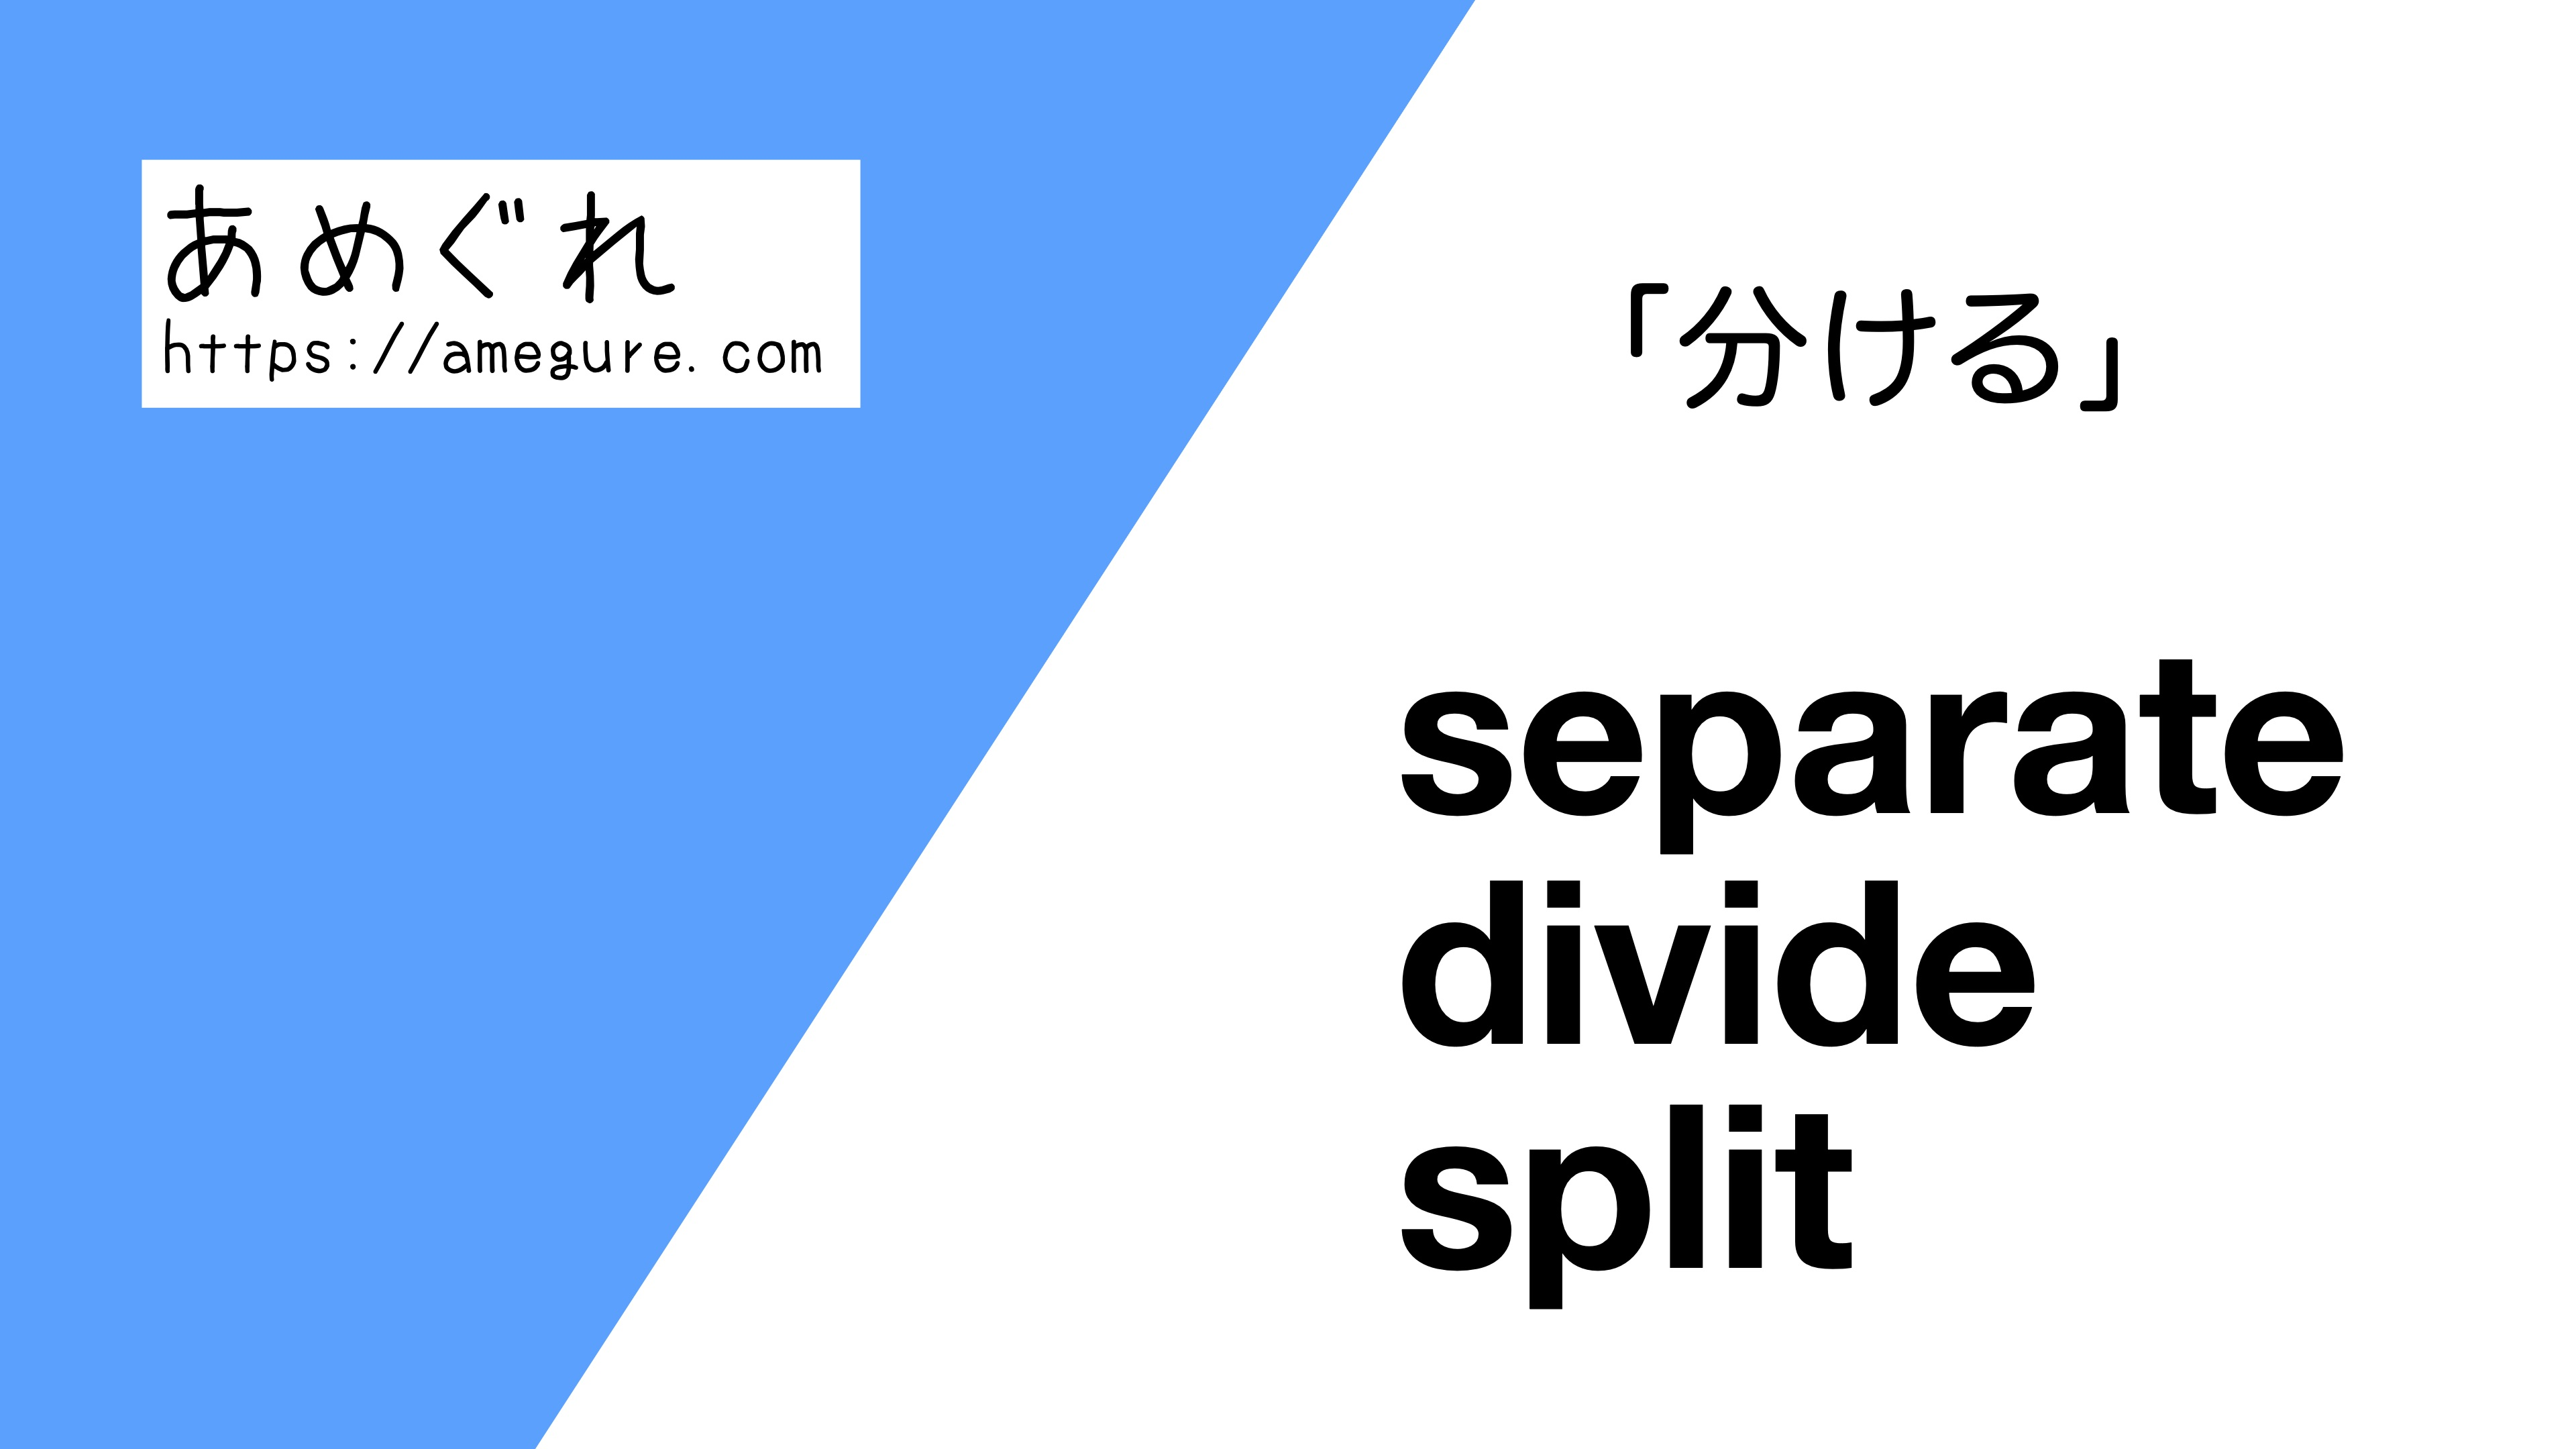 separate-divide-split違い